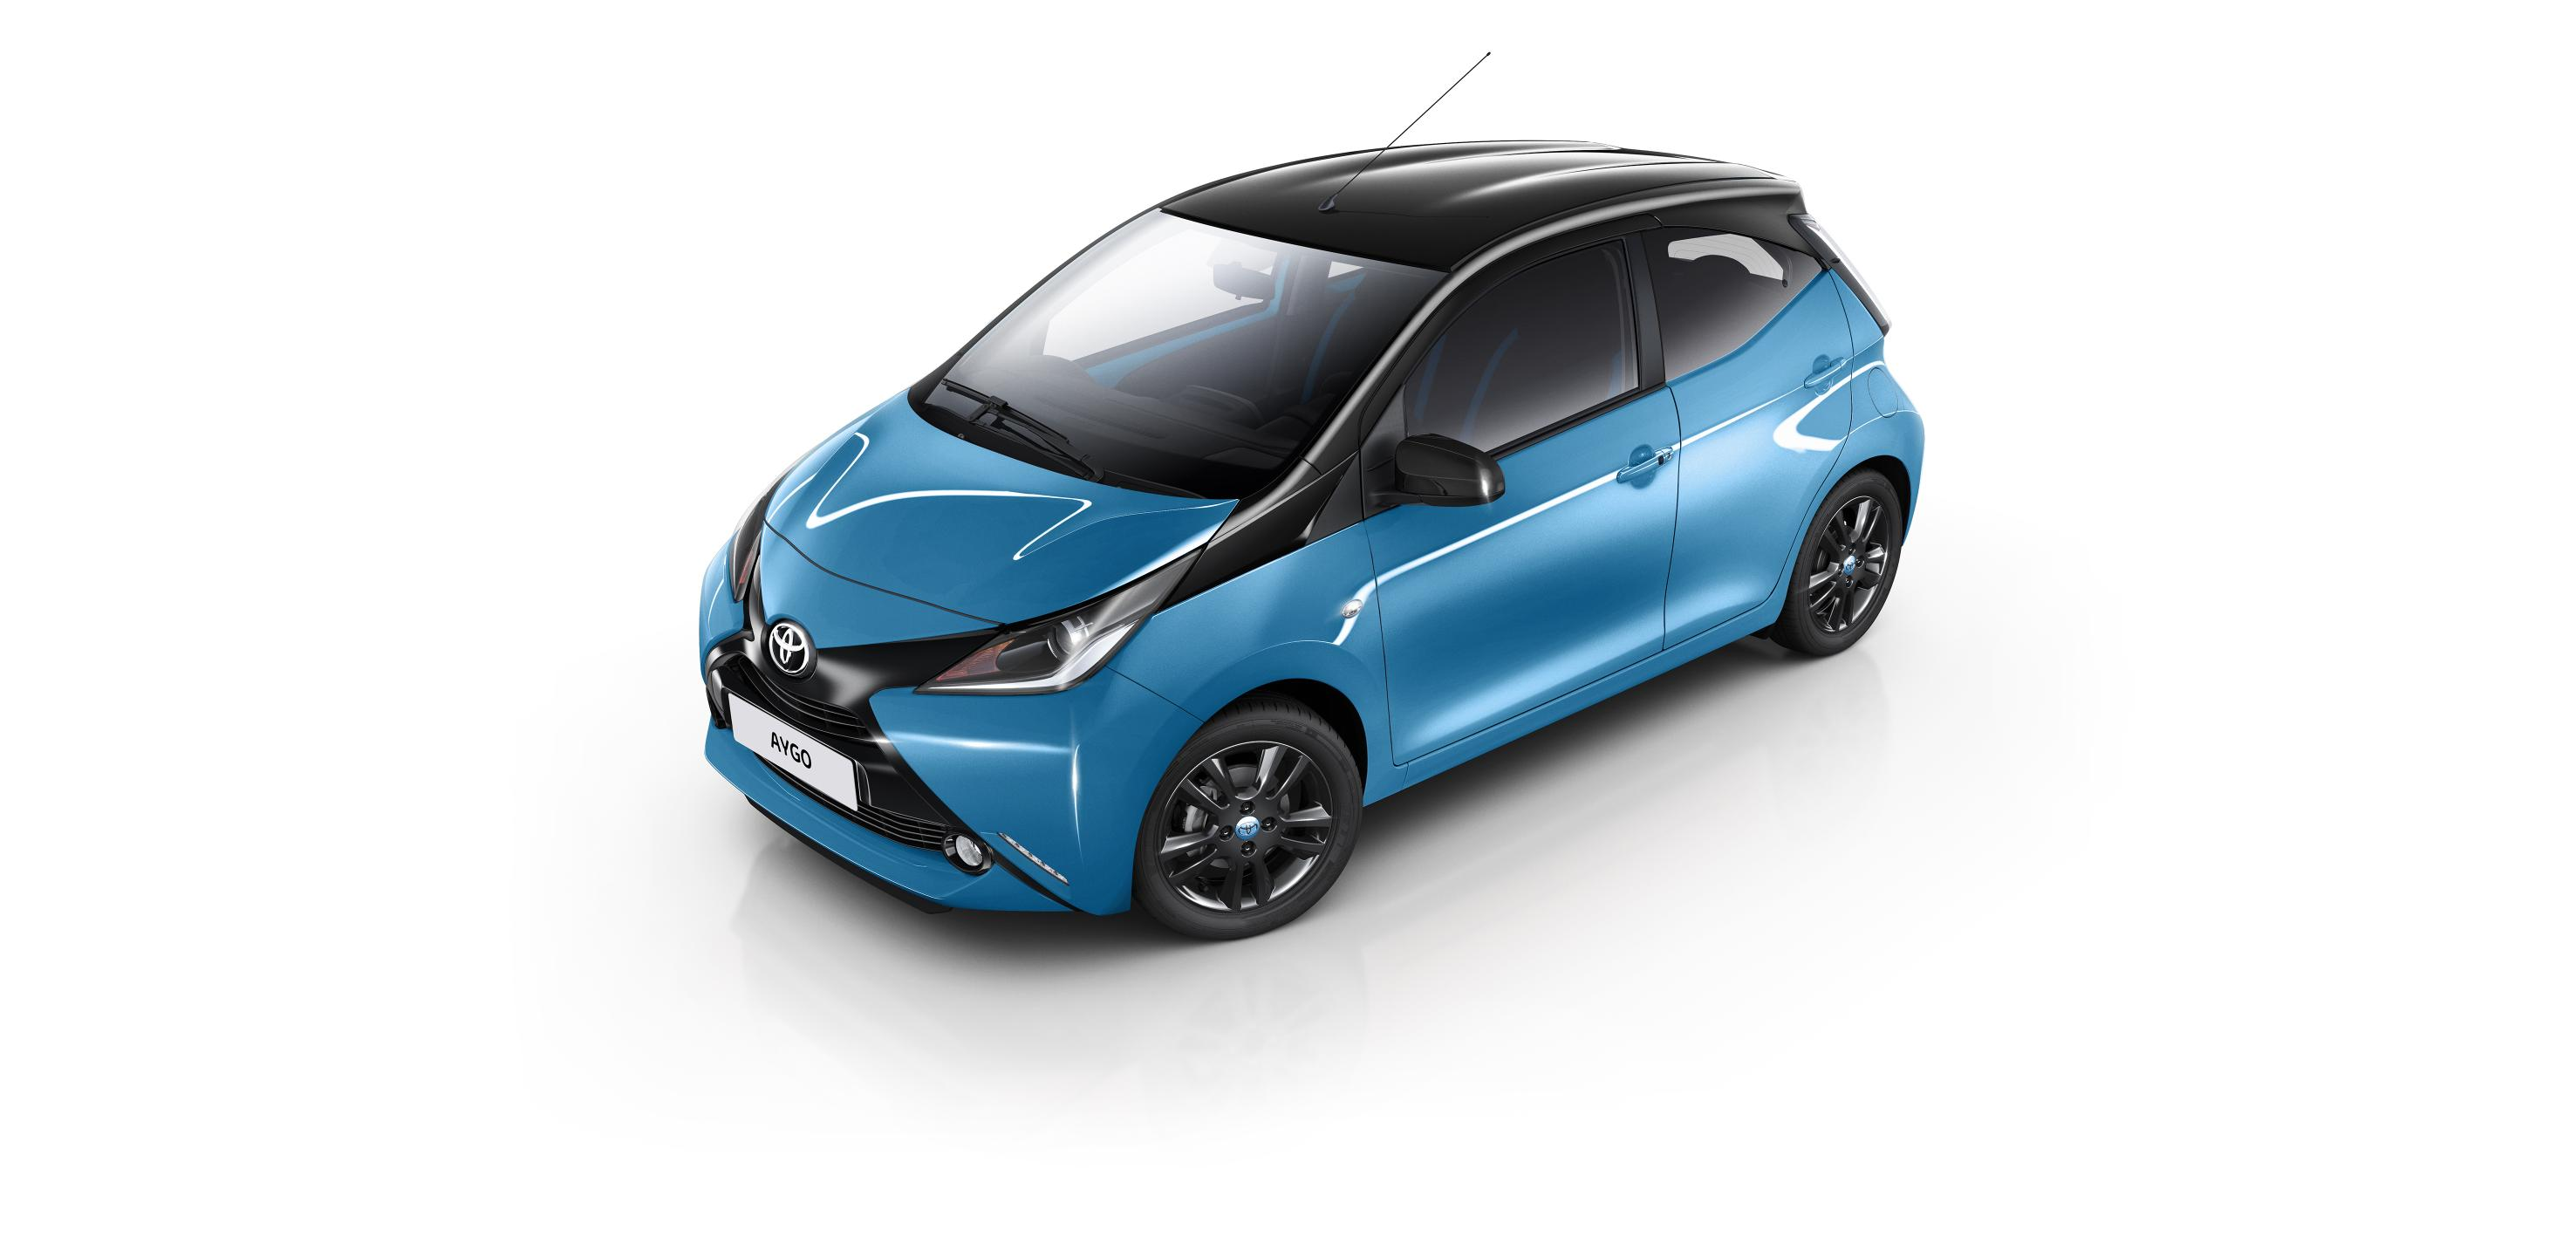 New Wave Auto >> 2015 Toyota Aygo x-pure and x-cite Available to Order from £11,295 - autoevolution